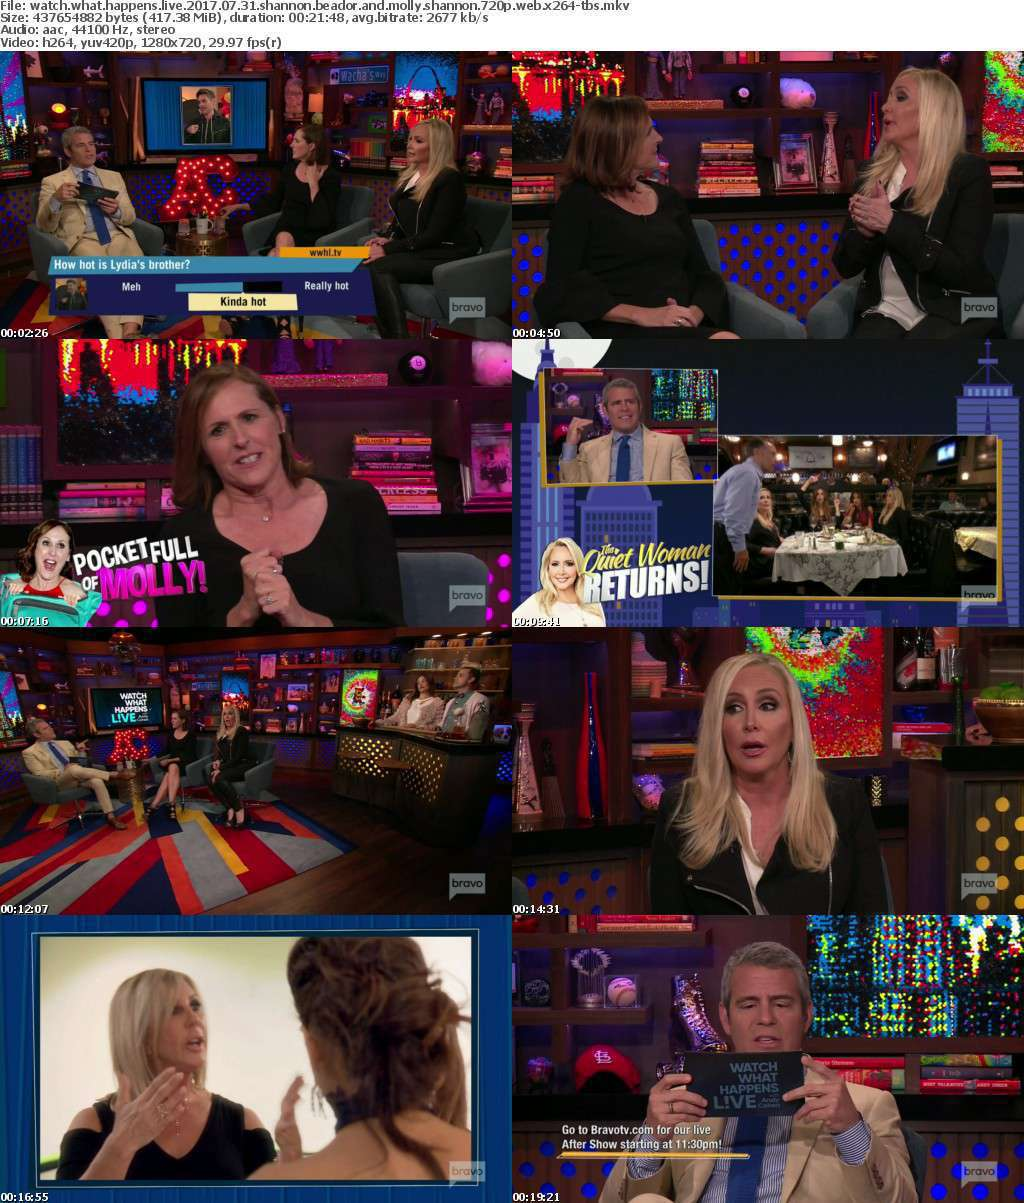 Watch What Happens Live 2017 07 31 Shannon Beador and Molly Shannon 720p WEB x264-TBS